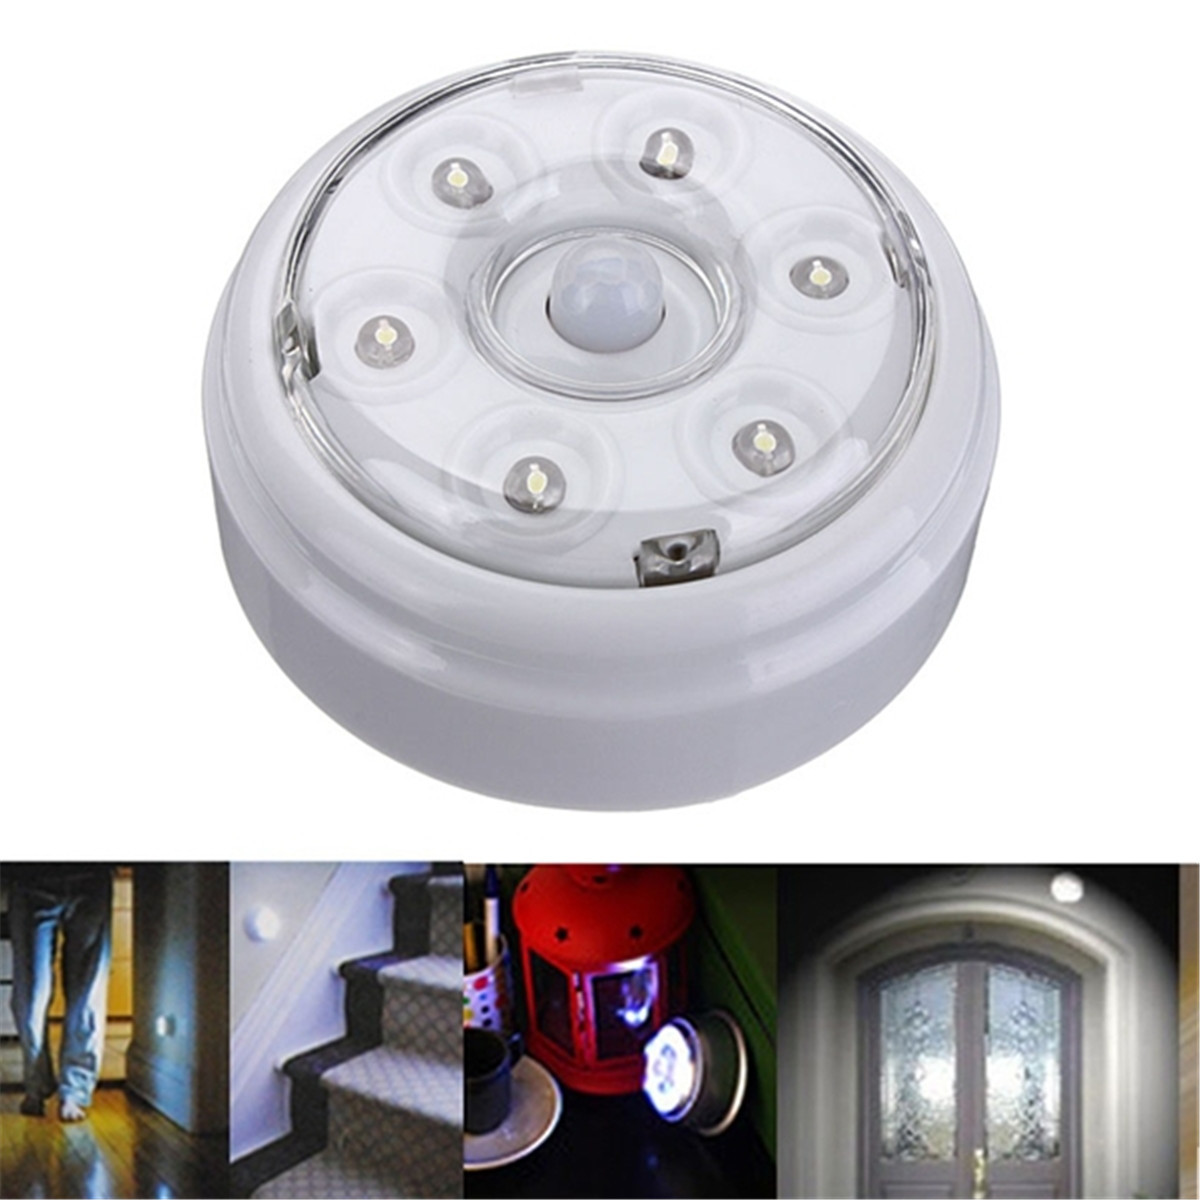 Portable Infrared PIR AUTO Sensor Motion 6 LED Night Light Wireless Detector Lamp Home Door Closet Cabinet Corridor Brightness 2pcs set stainless steel 90 degree self closing cabinet closet door hinges home roomfurniture hardware accessories supply